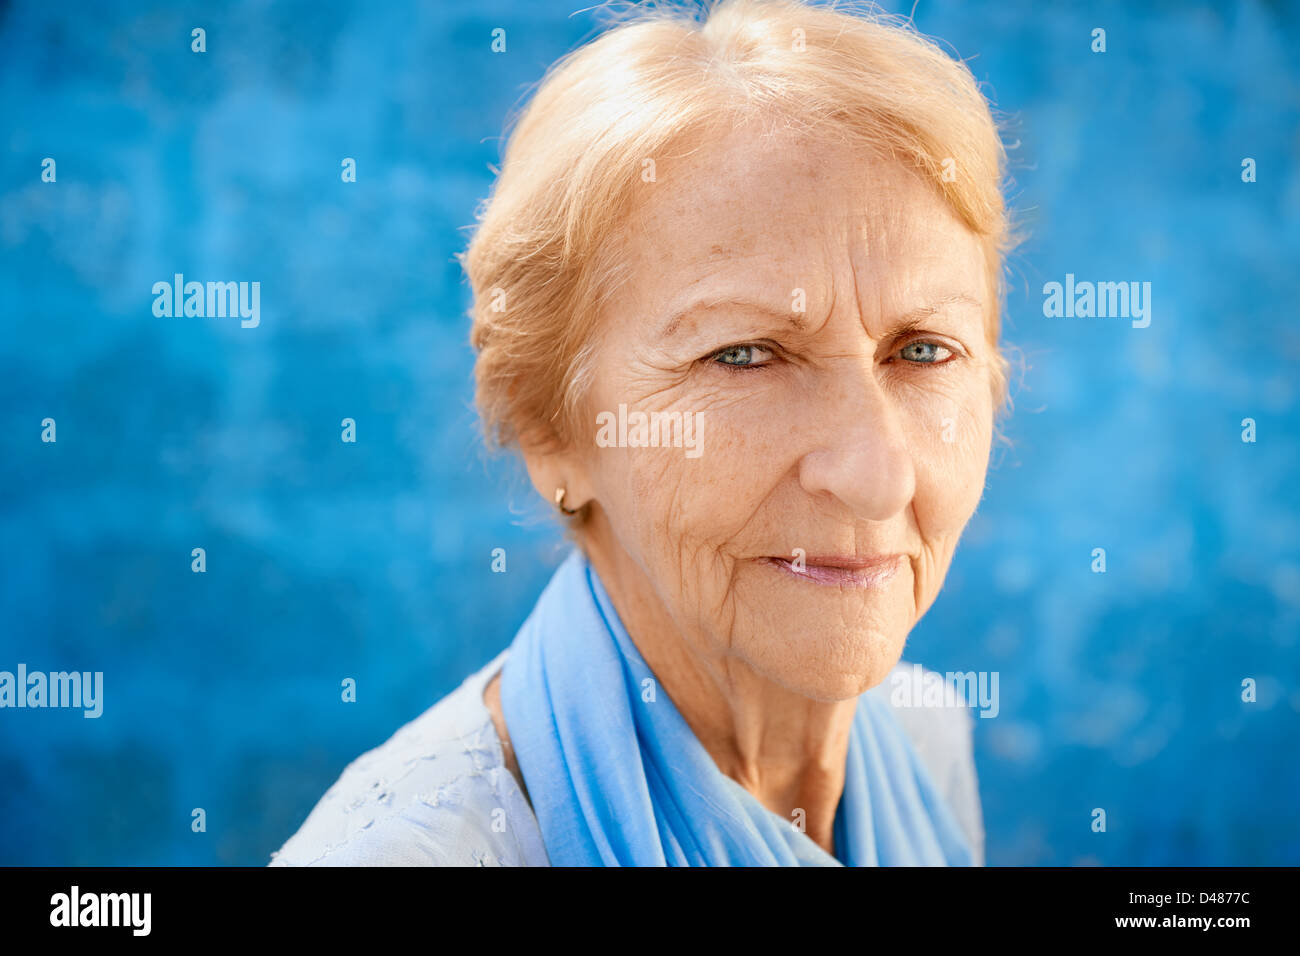 Senior people portrait, happy old blonde woman in blu clothes smiling and looking at camera against blue wall - Stock Image